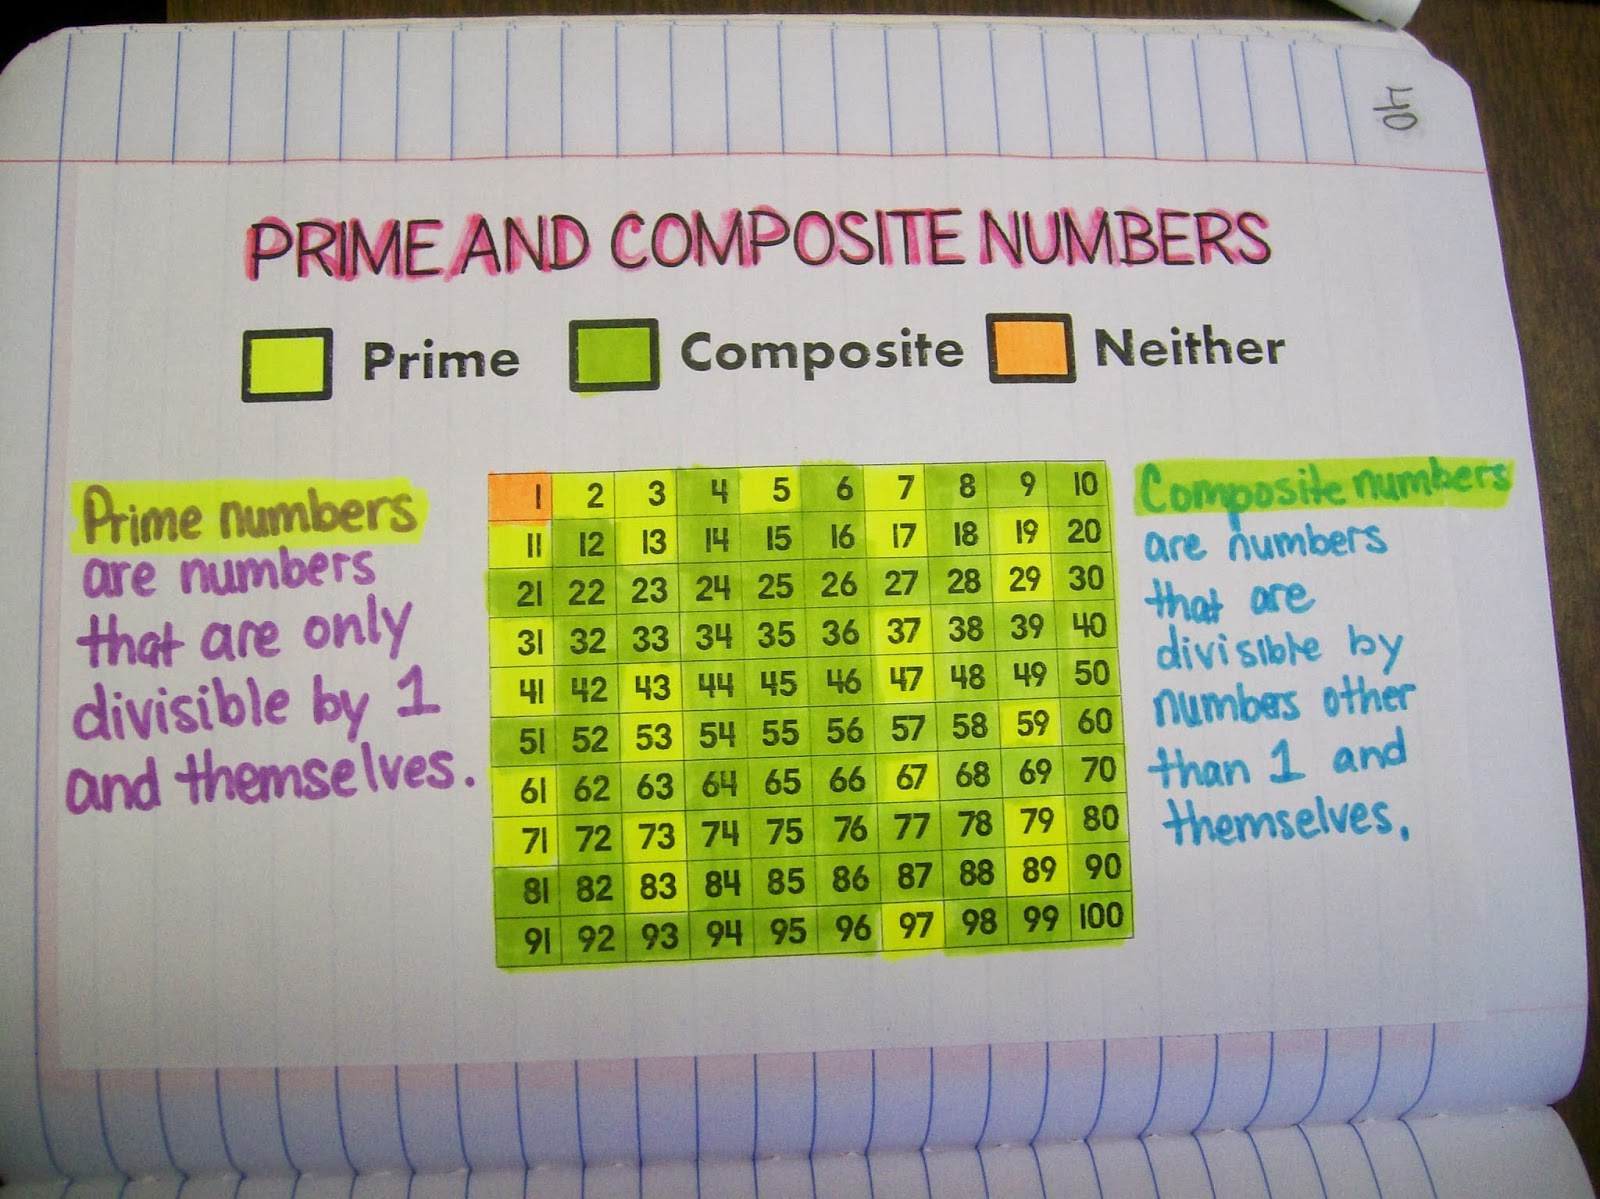 Prime And Composite Number List | Beautiful Scenery Photography